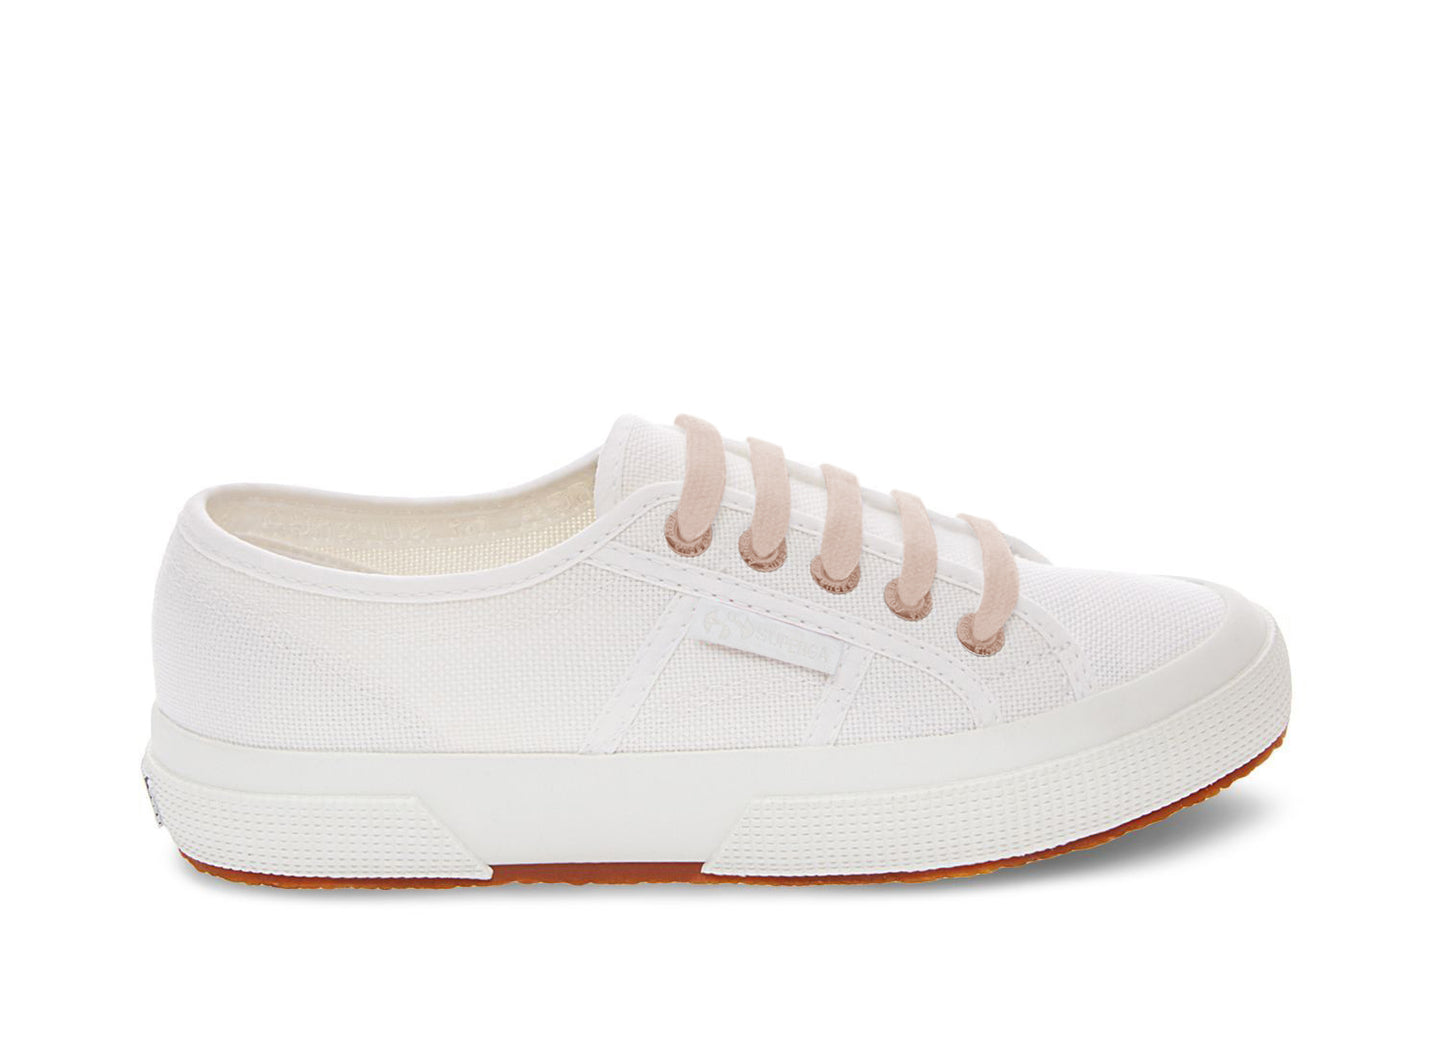 2750-COTW CONTRAST WHITE PINK - Women's